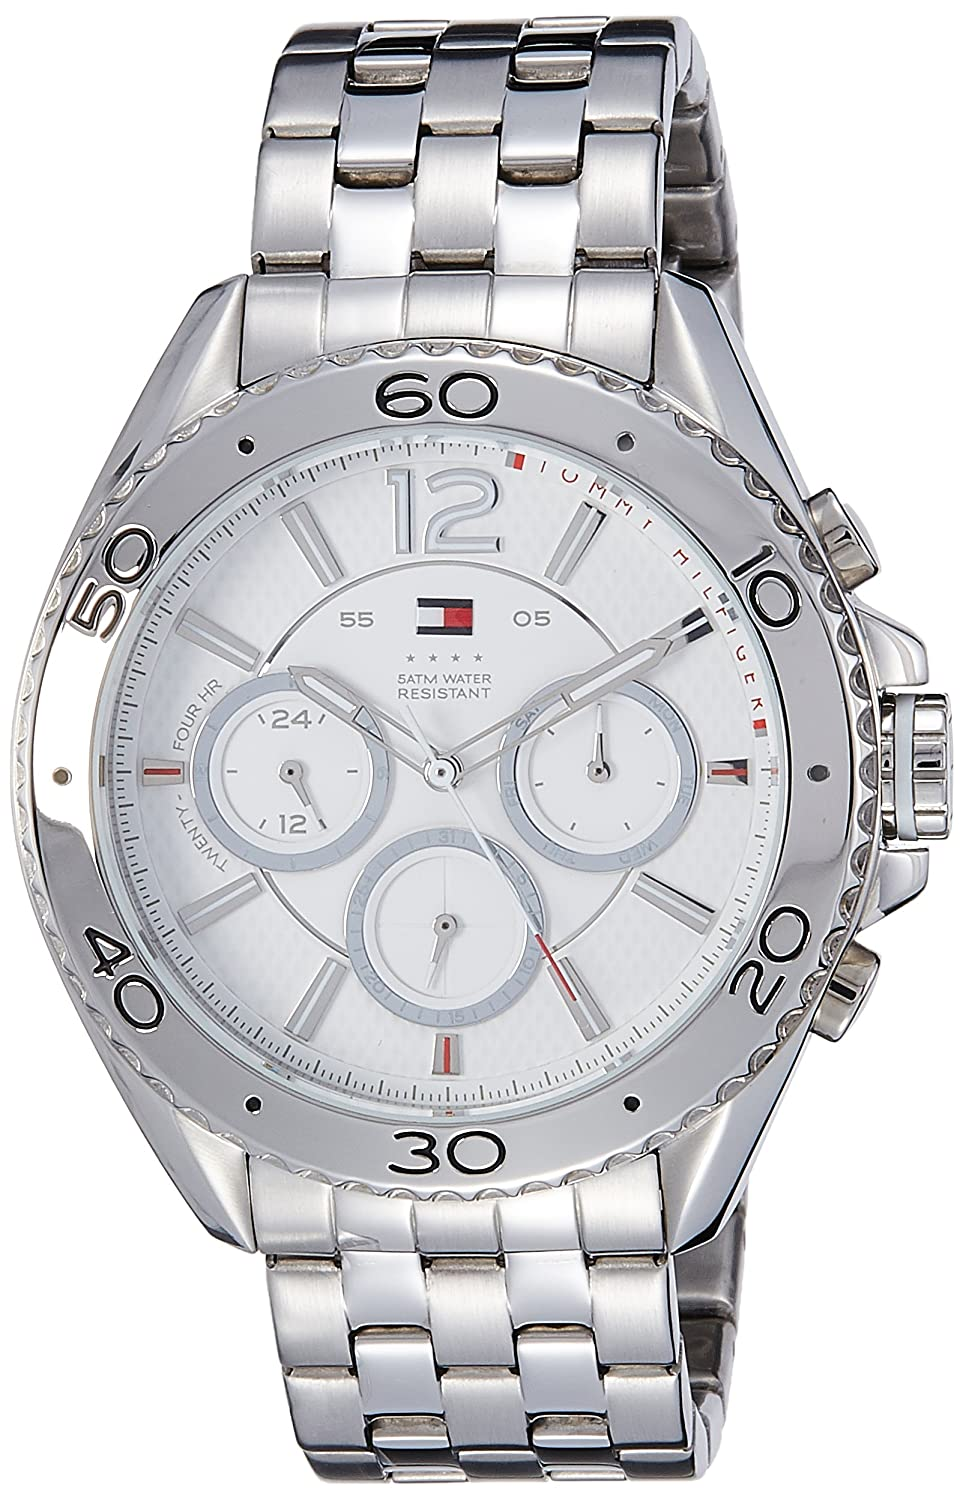 Buy Tommy Hilfiger White Dial Analog Chronograph Watch Th1791032